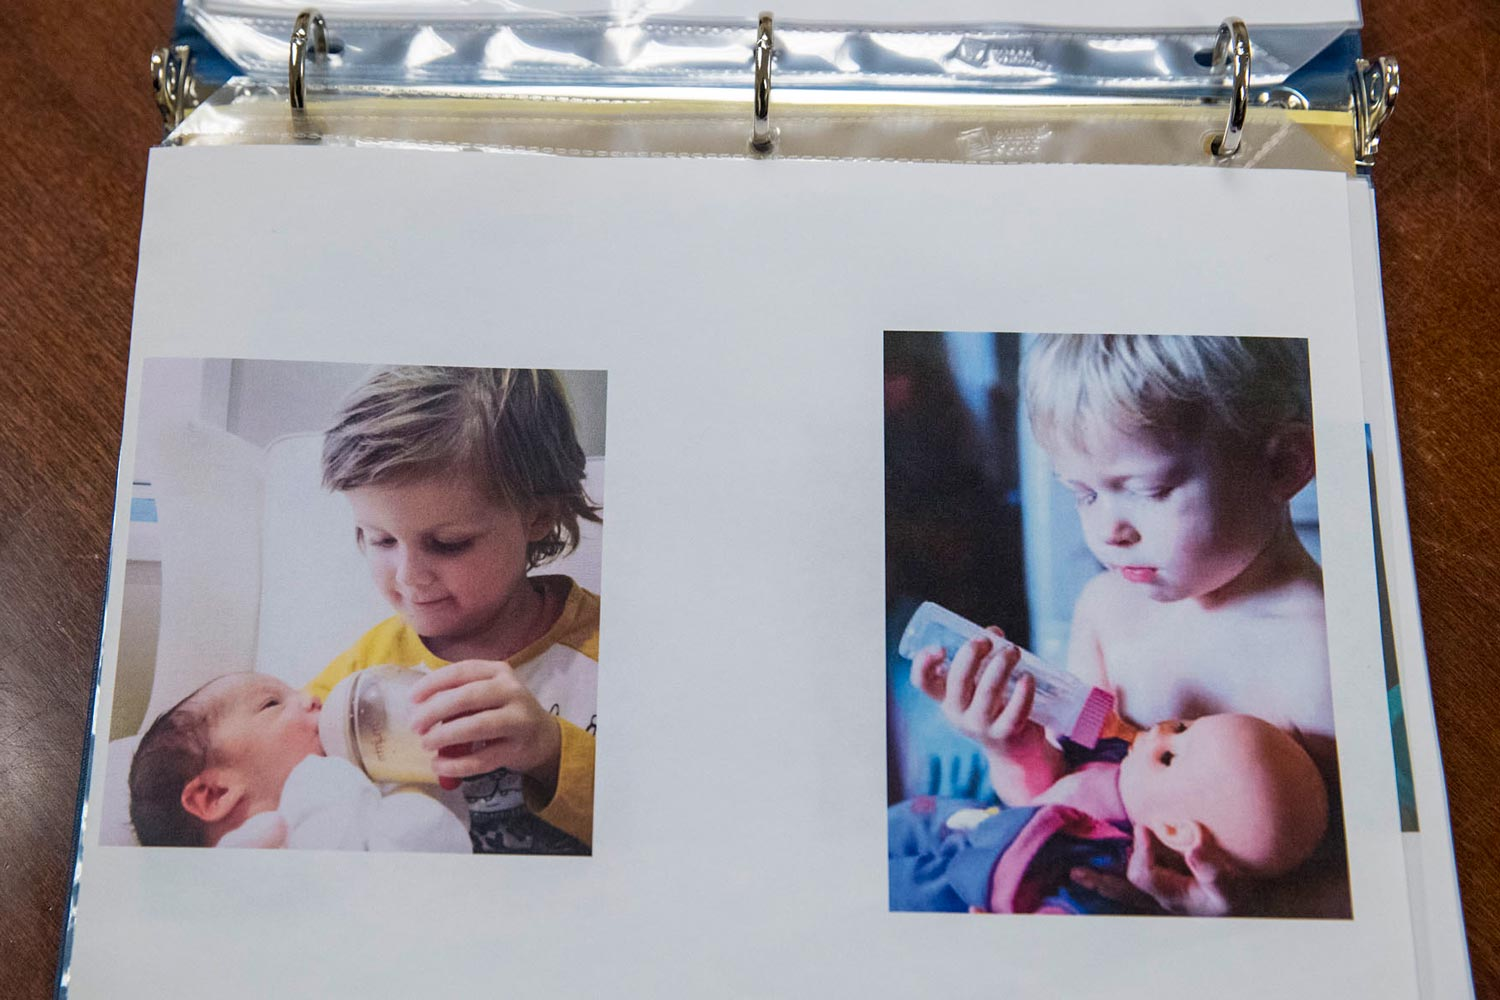 Two photos in a binder: a small child bottle-feeding a baby, and a small child bottle-feeding a doll